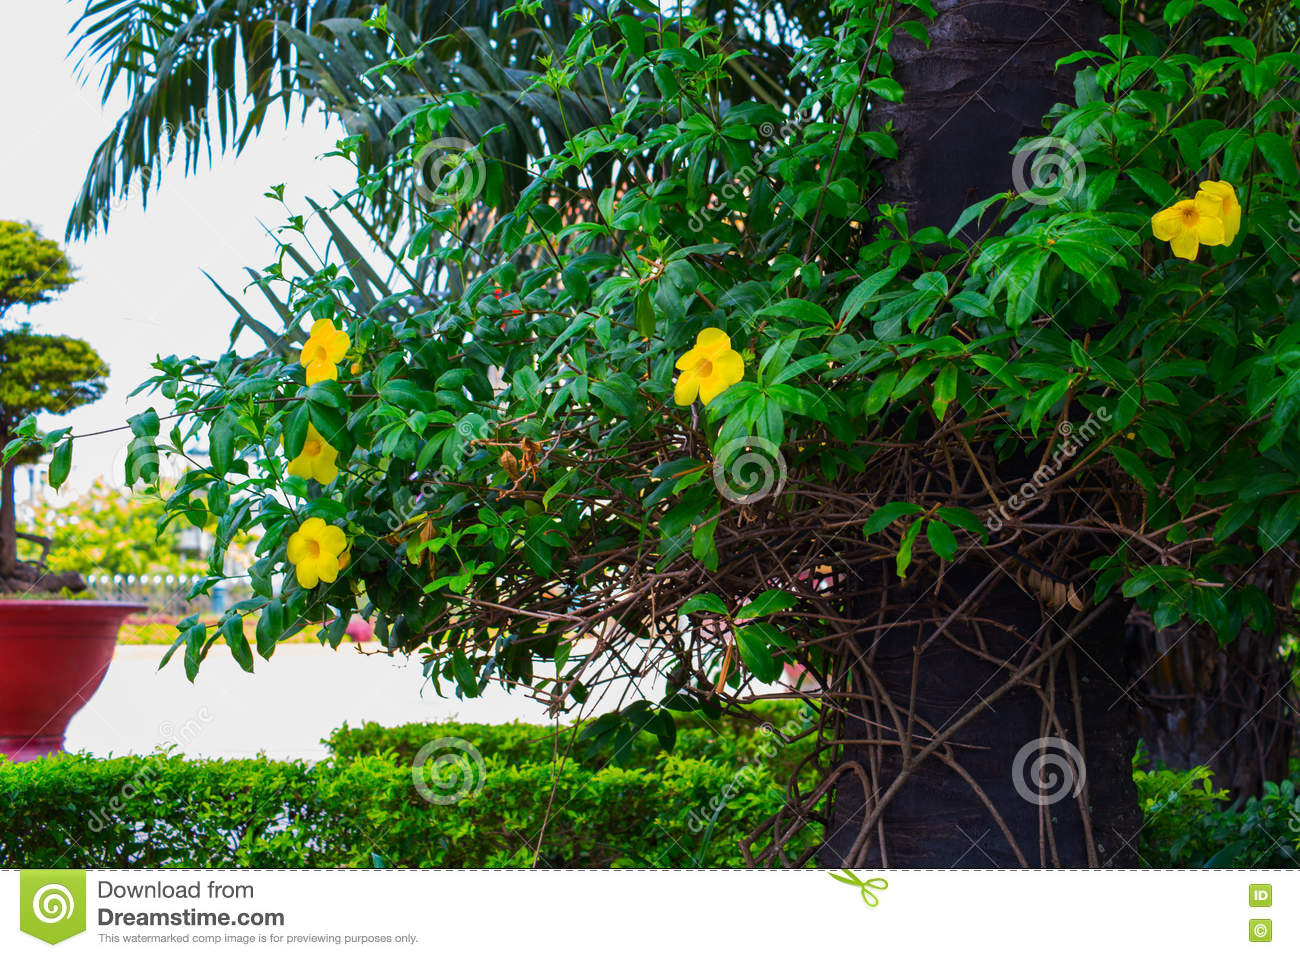 Beautiful Shrubs With Yellow Flowers And Trees With Green Leaves In